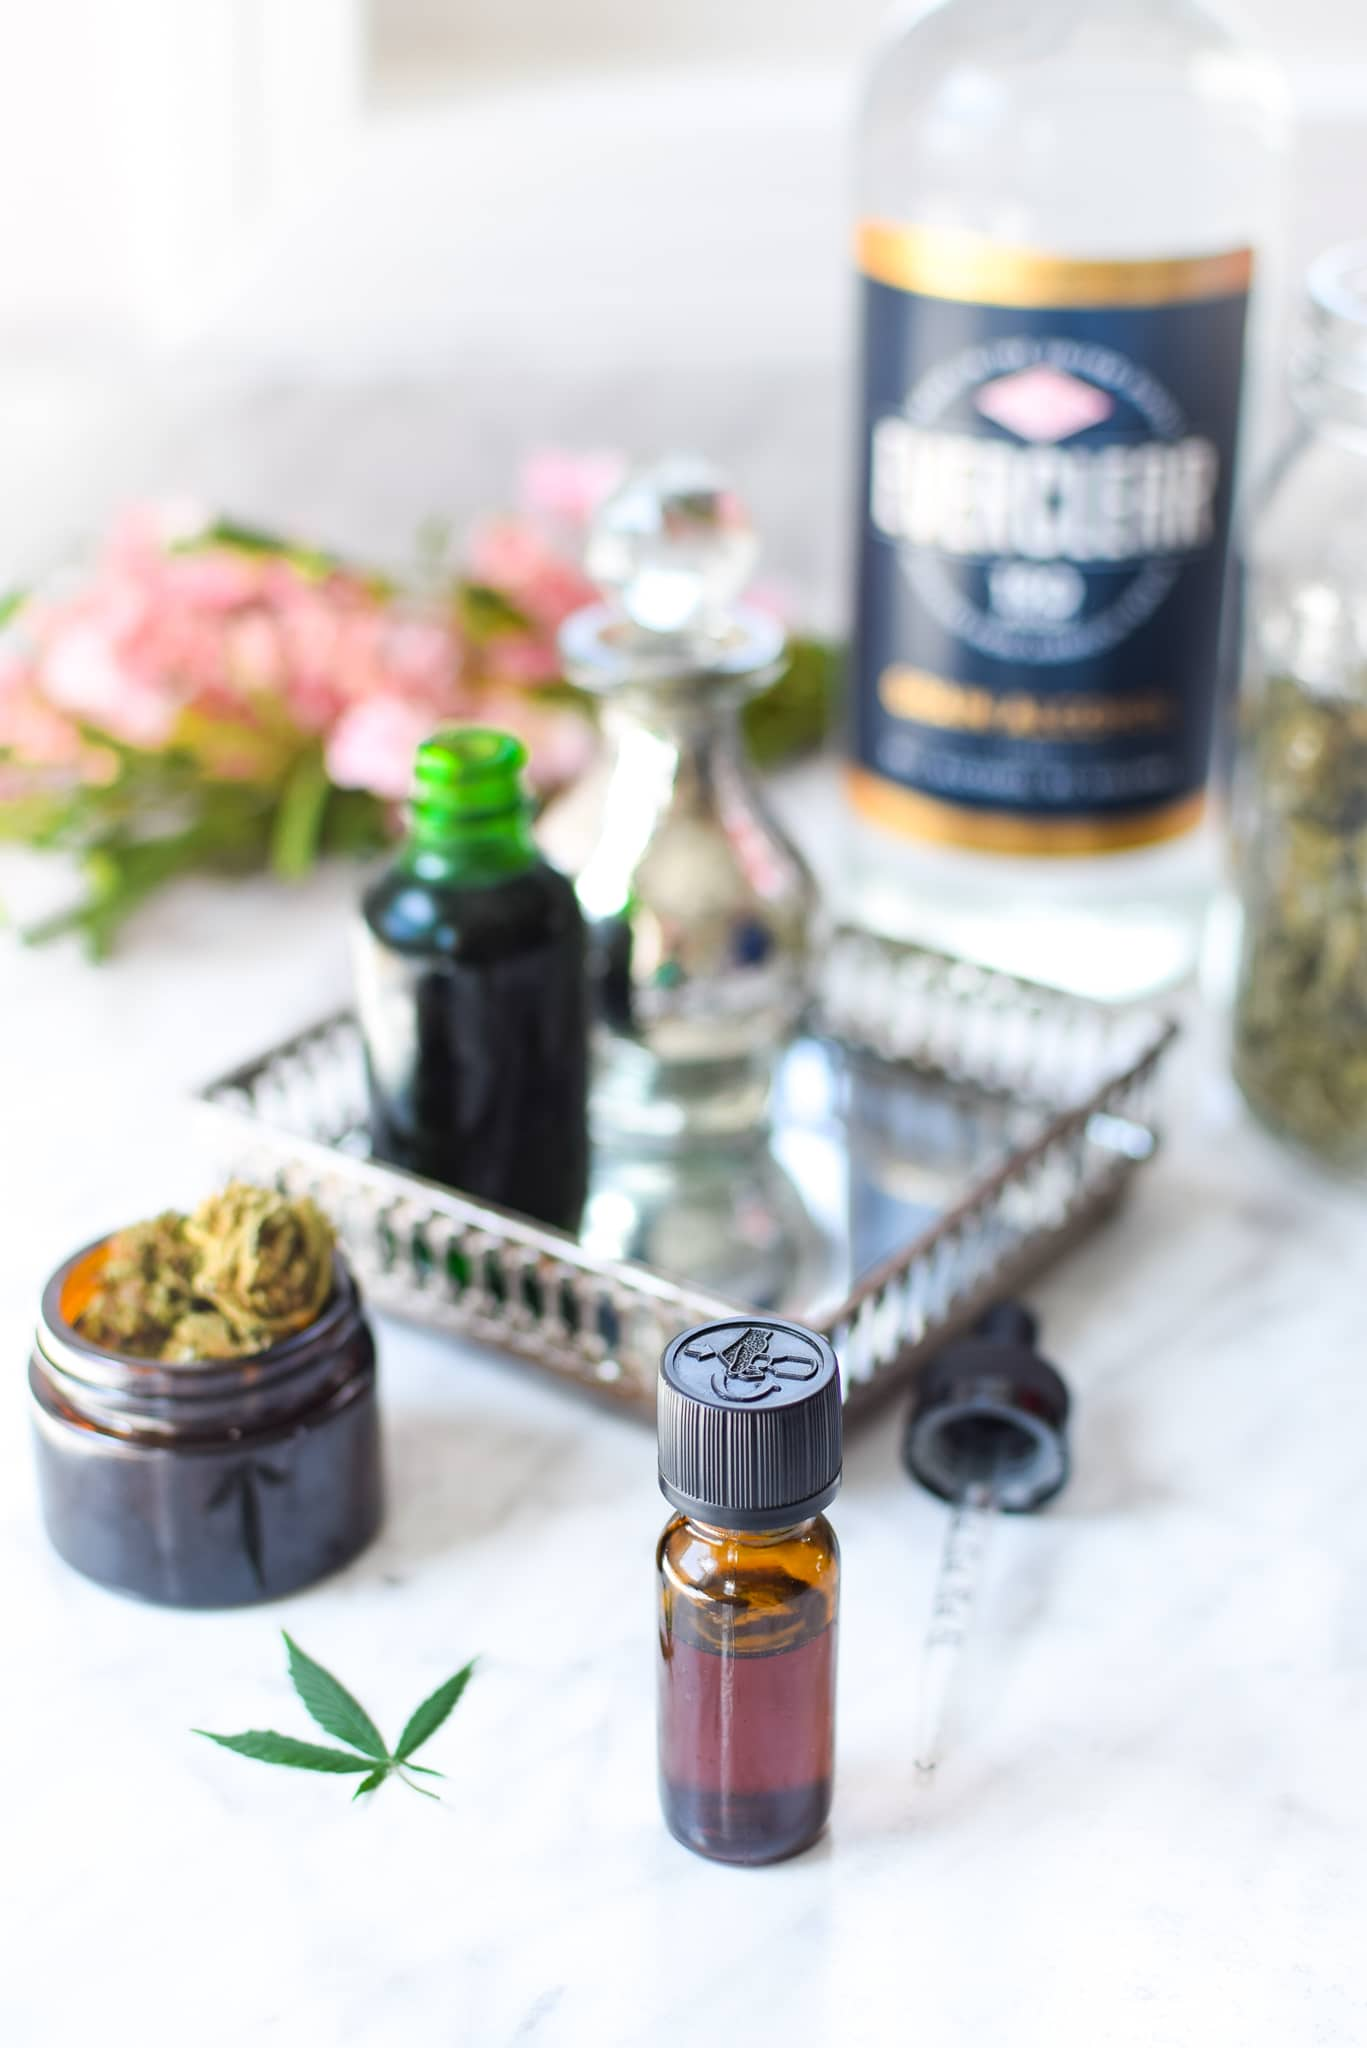 A white countertop with a metal tray with a amber tincture bottle with cannabis to the lefthand side, ever clear bottle in the background